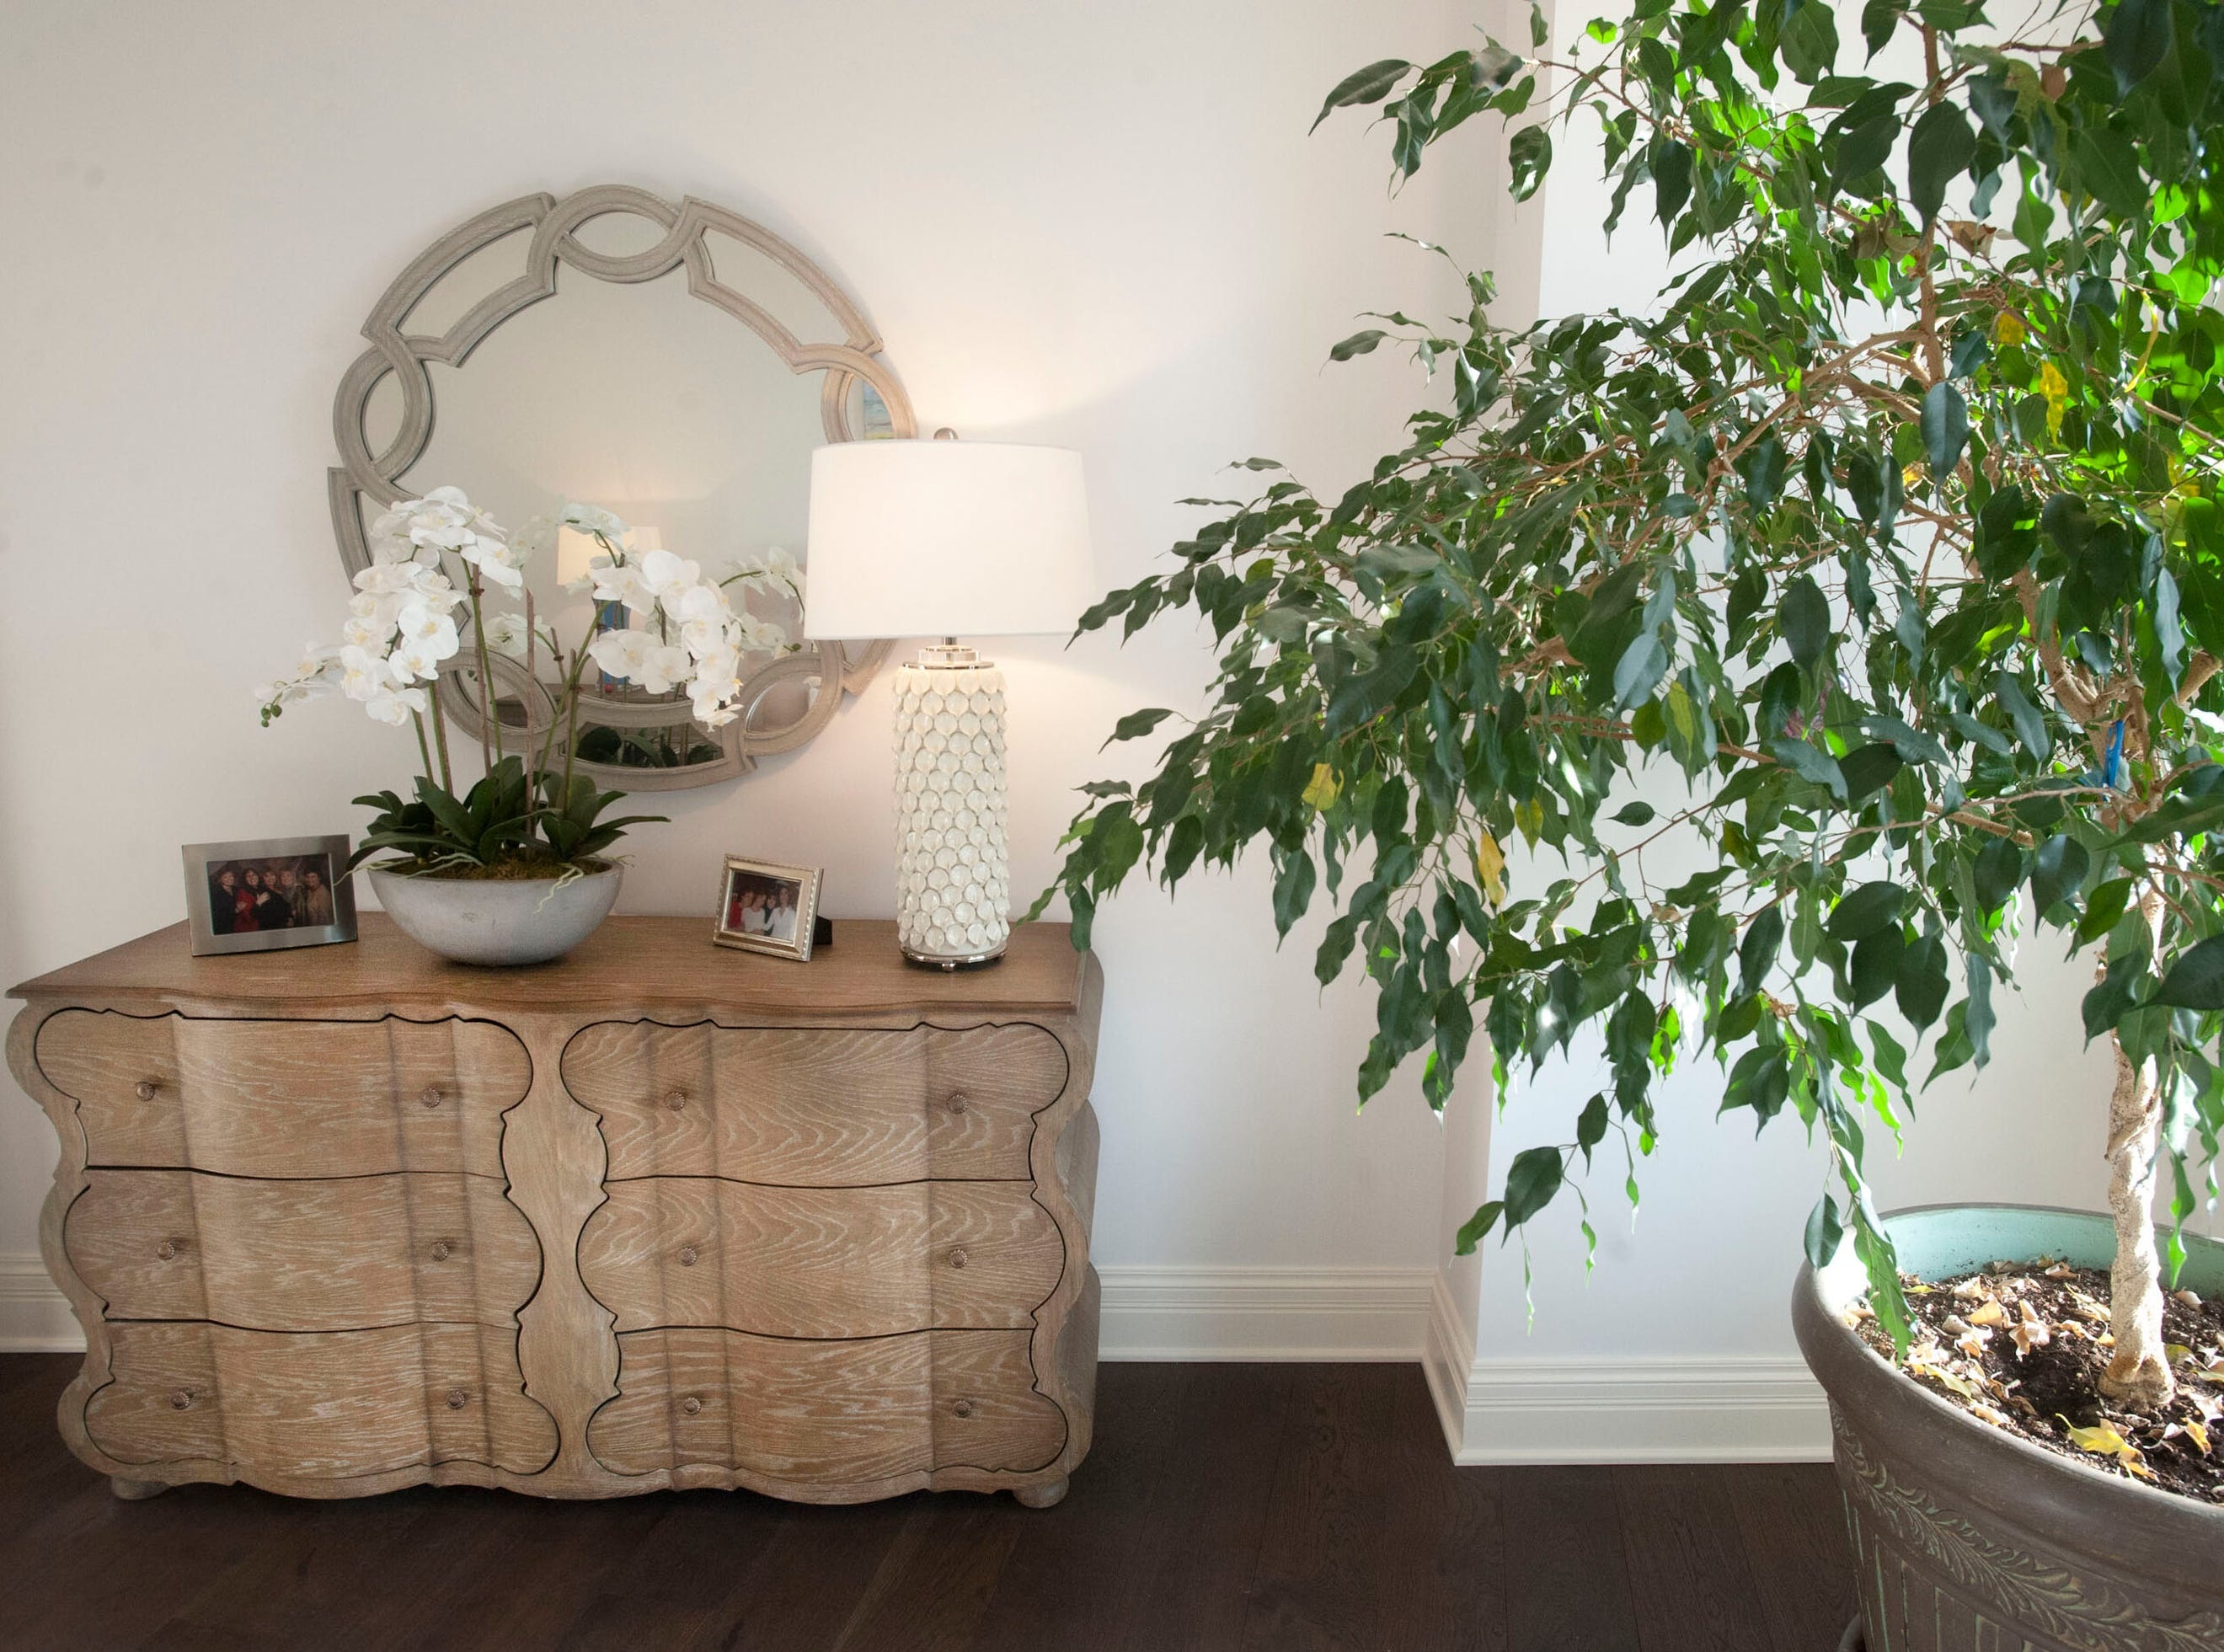 The master bedroom of Denise Puthuff's condominium. The ficus tree at right wasn't doing so well in Puthuff's office, Brownsboro Dermatology, so her partner, Laura Klein (who brought the tree to the practice,) asked Puthuff to take the tree off her hands. The plant has since flourished in its new location, hit by bright sunlight coming through the window of the master bedroom.